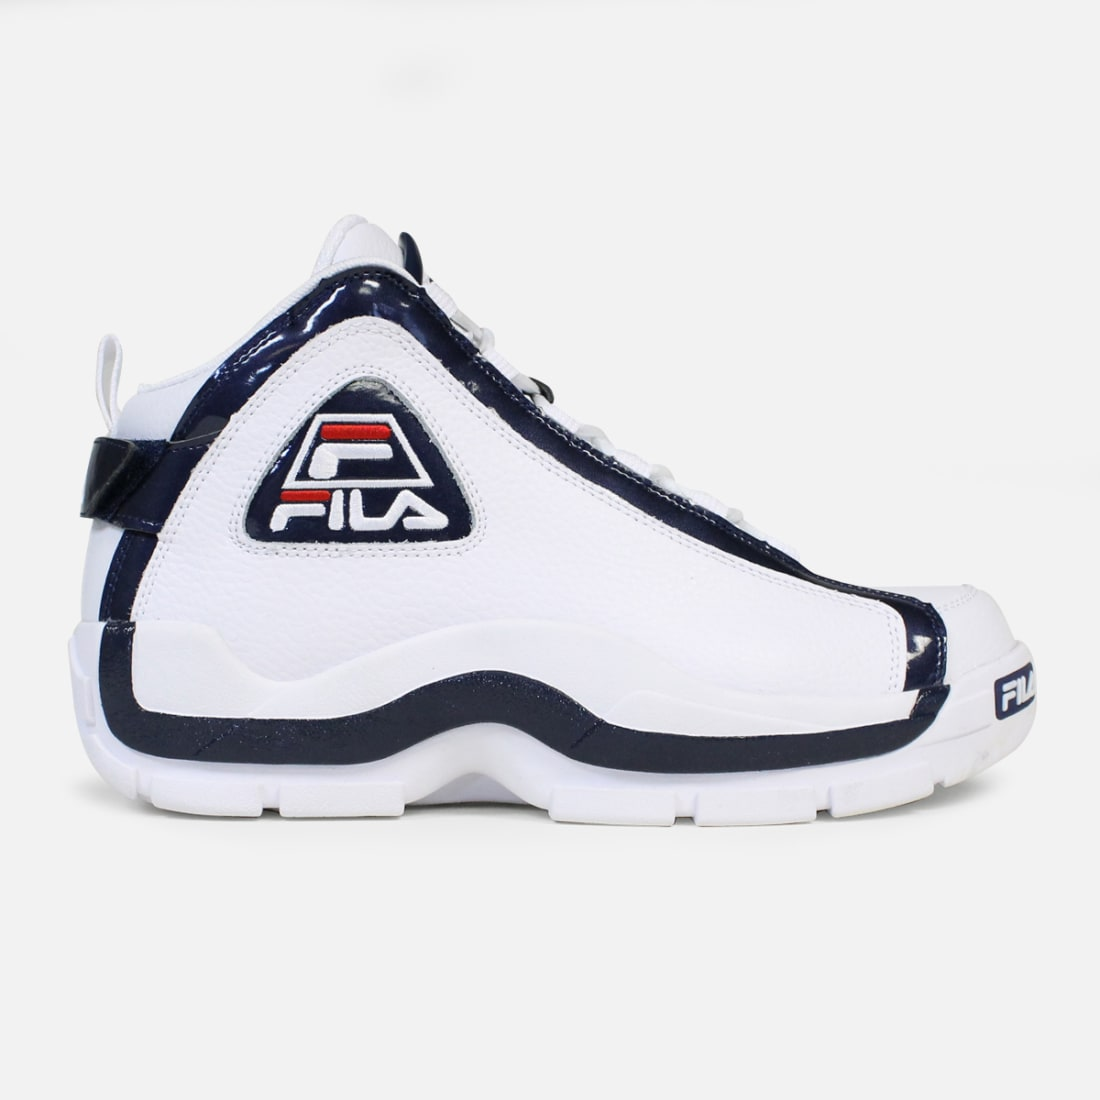 fila shoes grant hill 96 2pac greatest songs